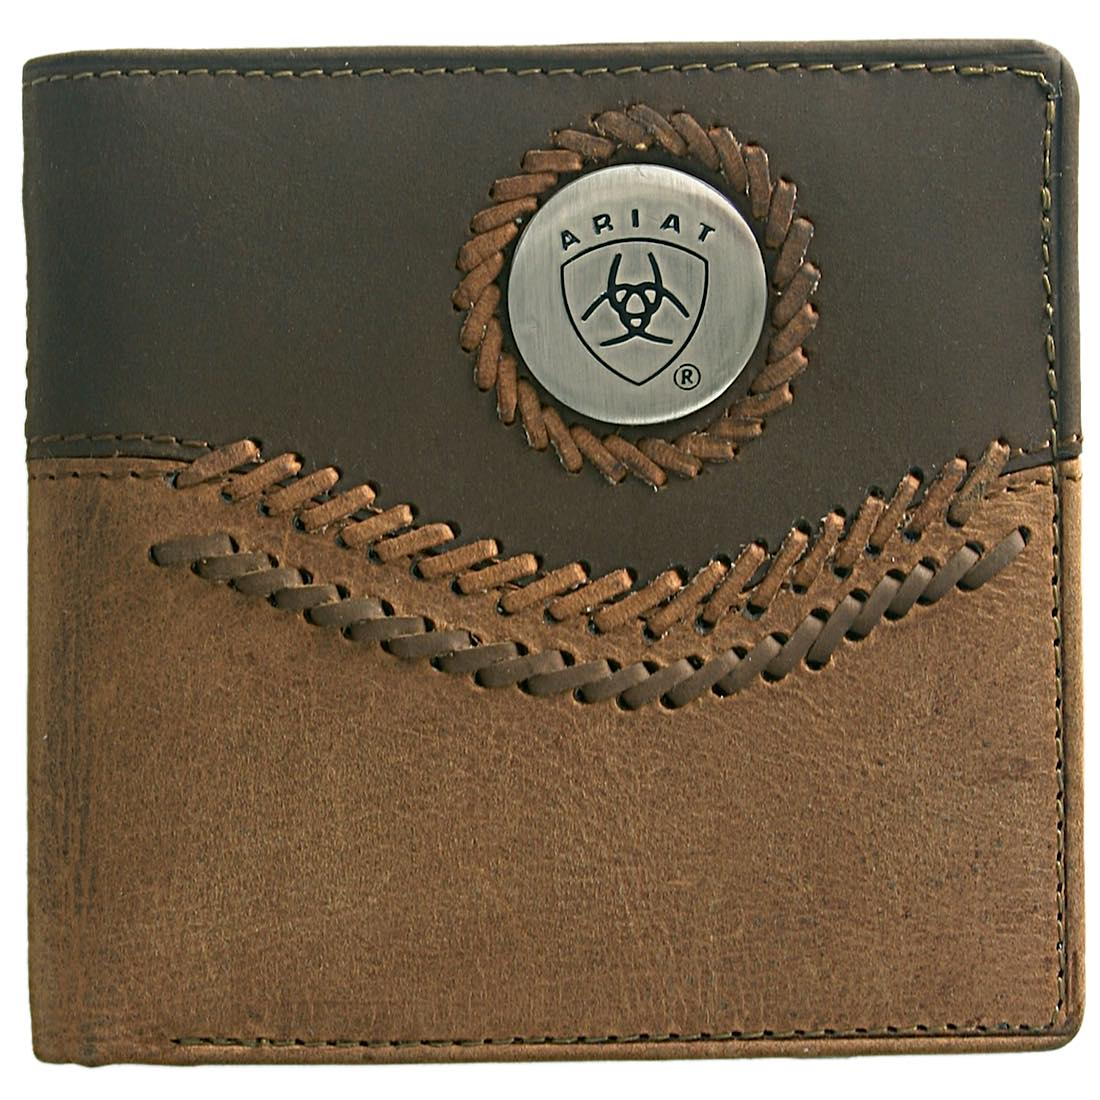 Bi Fold Wallet- Chestnut/ Brown WLT2101A